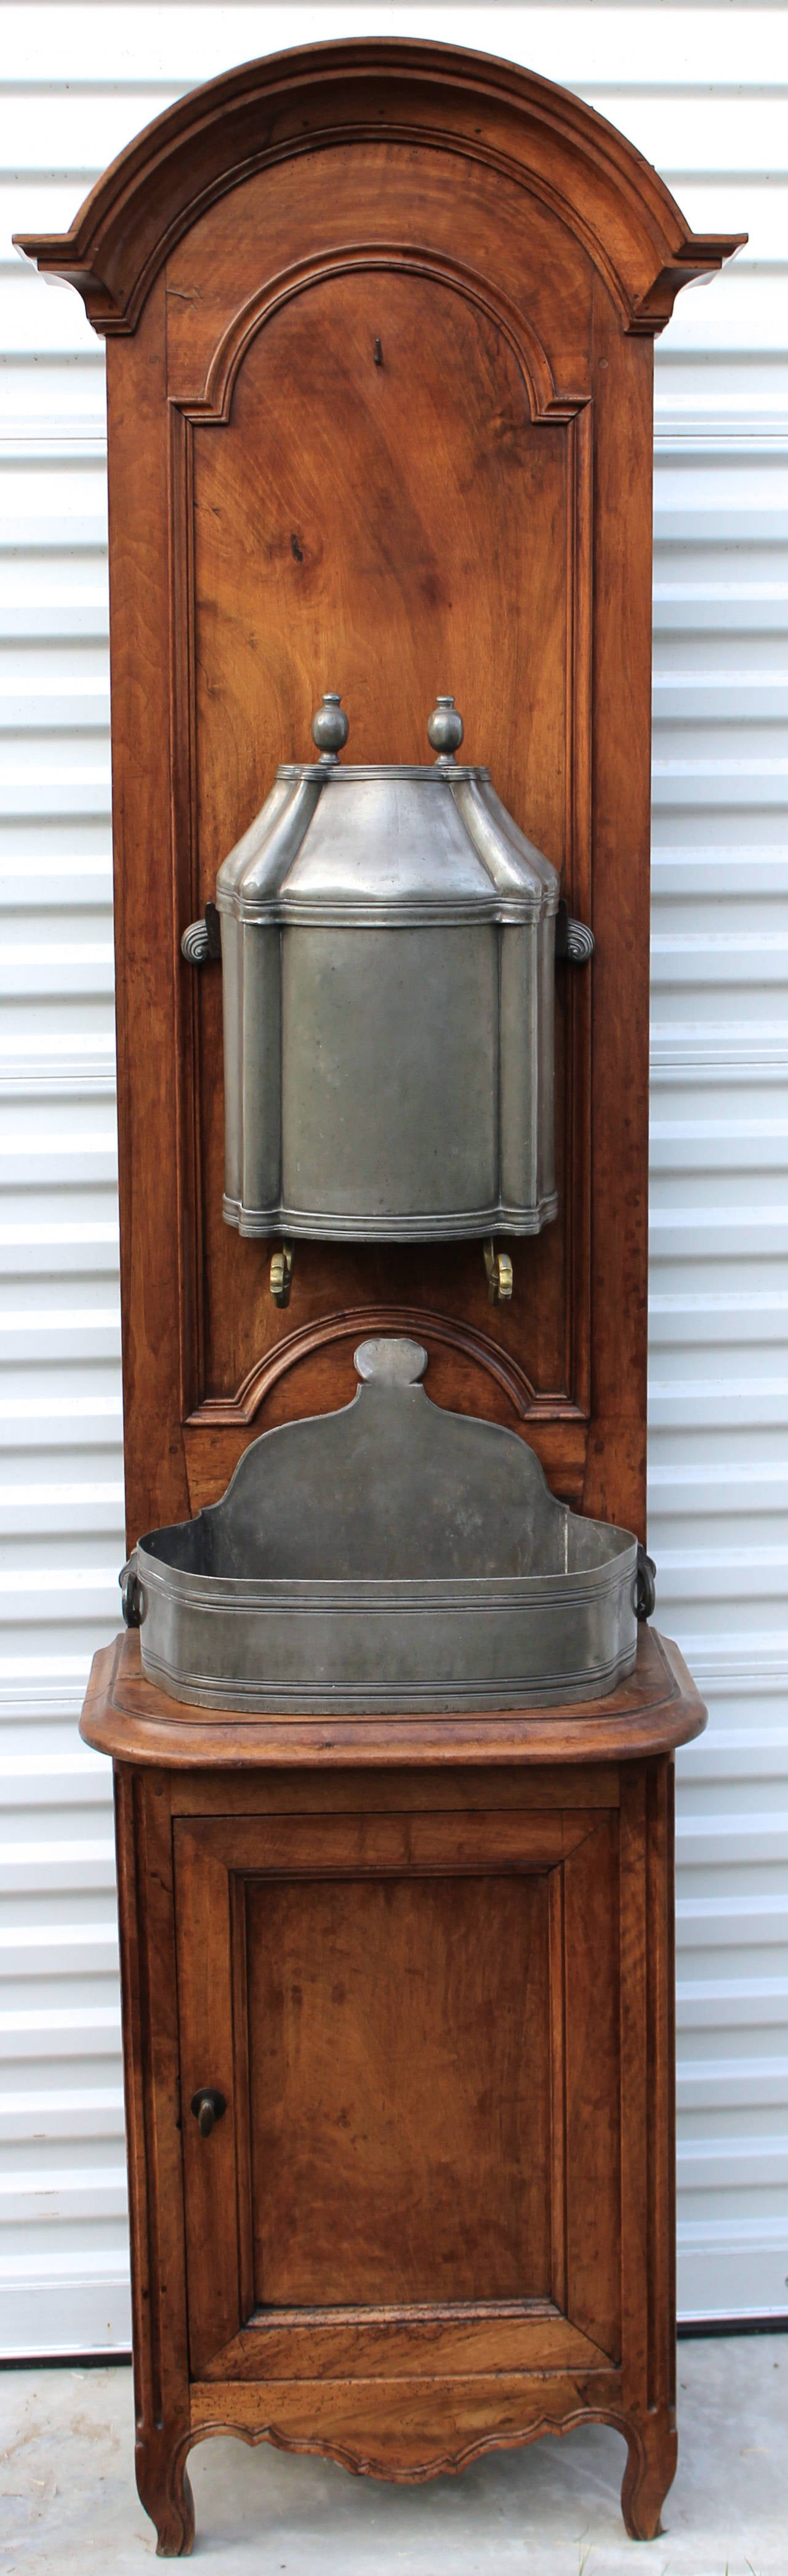 18th century inside pewter wall fountain or lavabo on its original